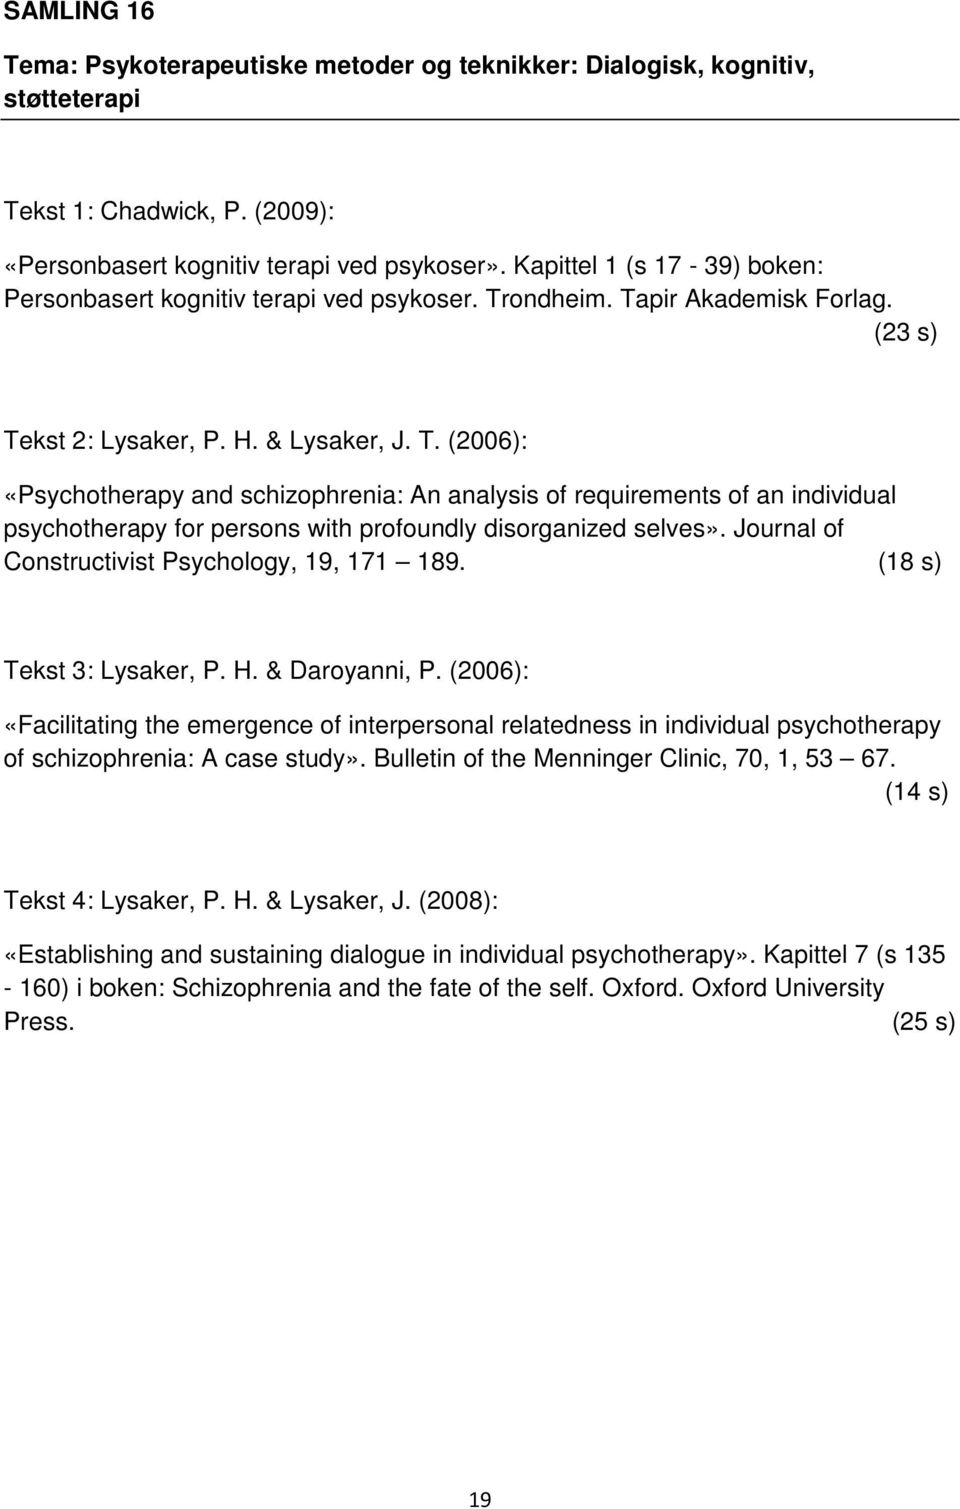 ondheim. Tapir Akademisk Forlag. (23 s) Tekst 2: Lysaker, P. H. & Lysaker, J. T. (2006): «Psychotherapy and schizophrenia: An analysis of requirements of an individual psychotherapy for persons with profoundly disorganized selves».